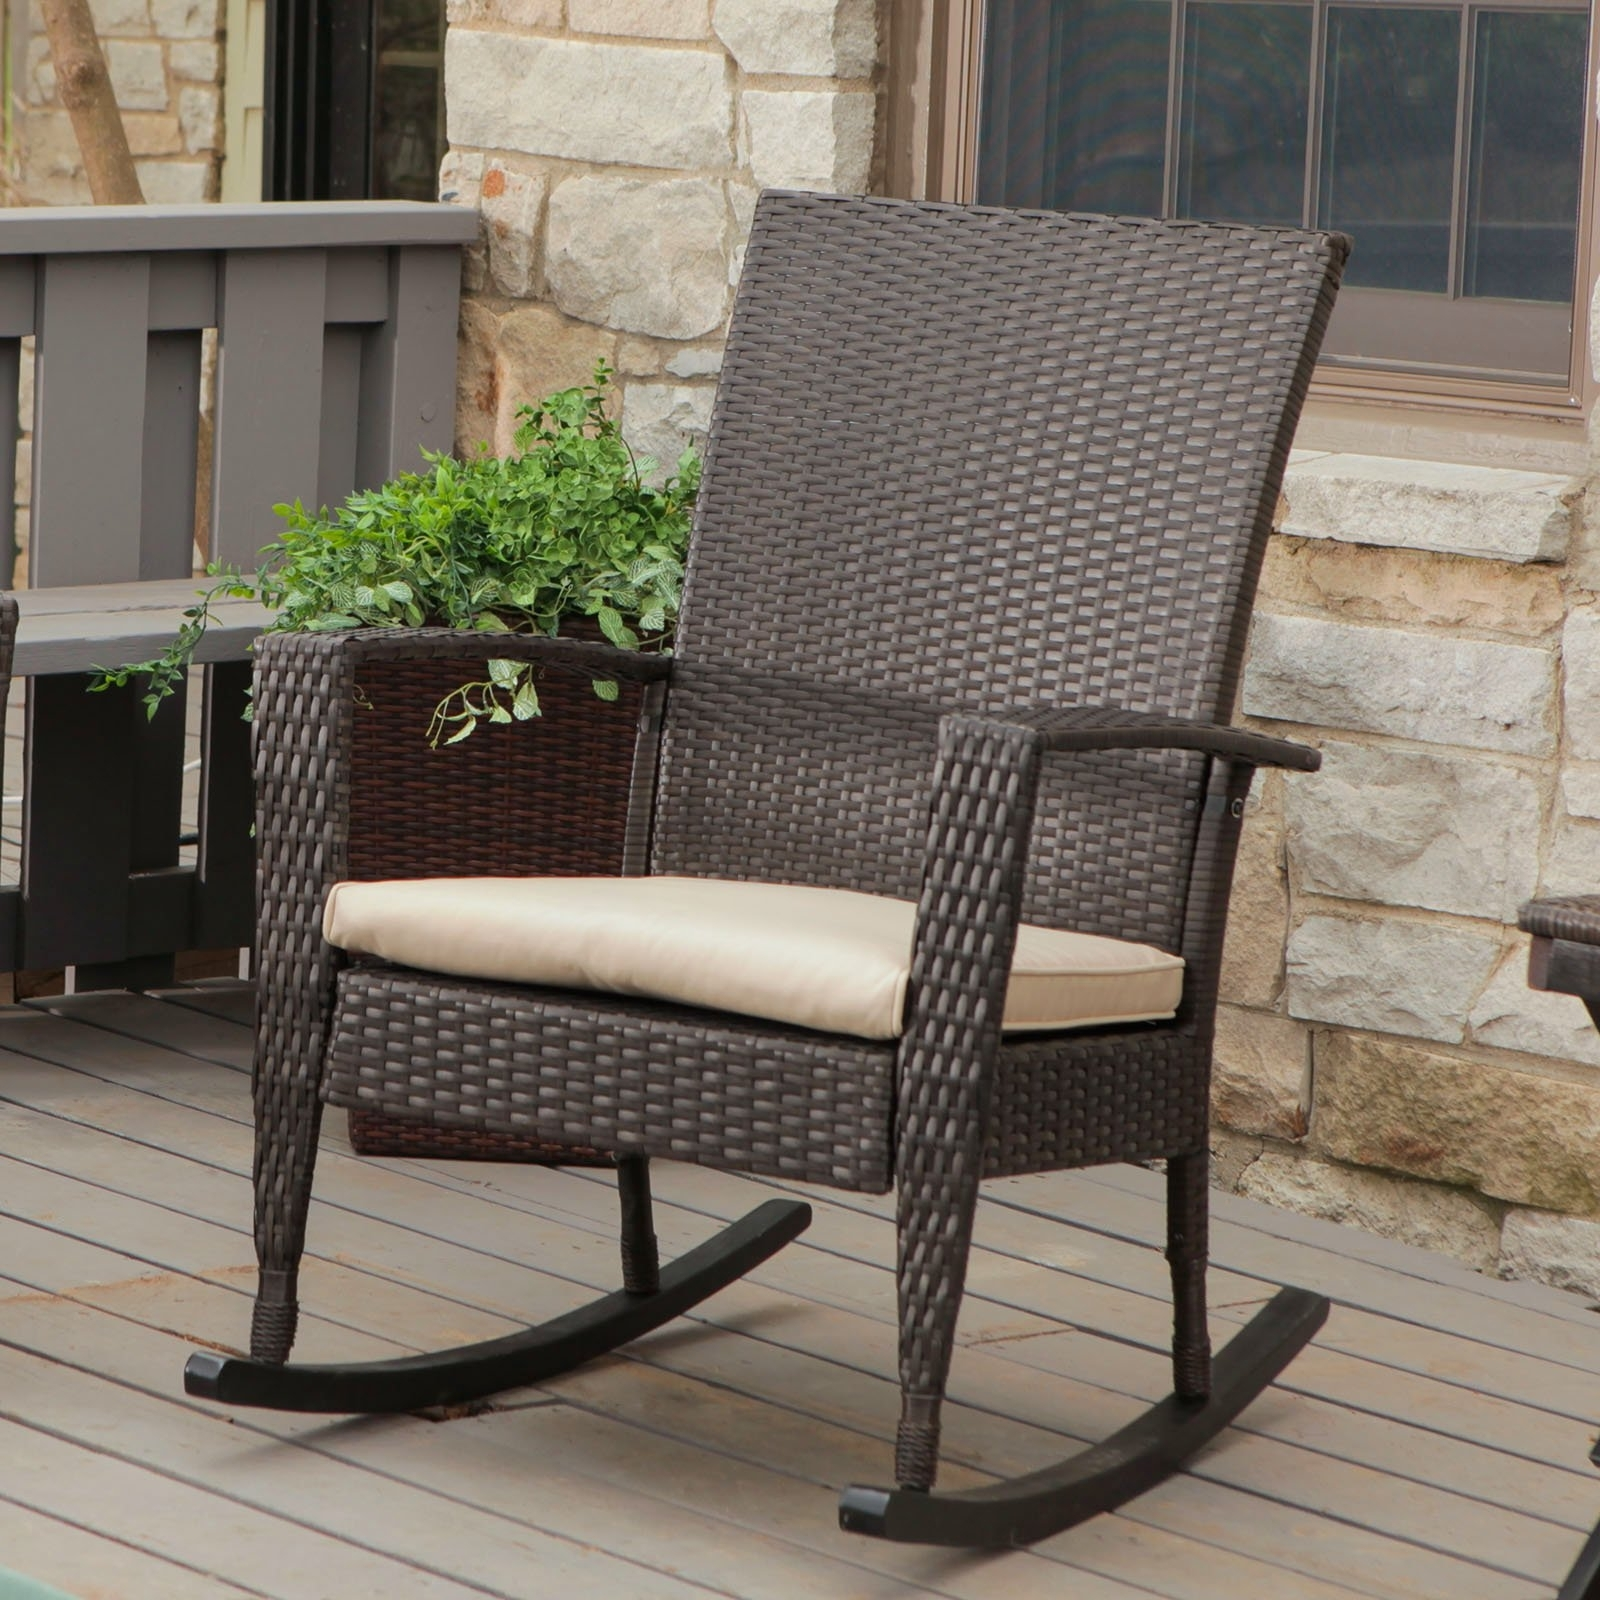 Antique Wicker Rocking Chairs With Springs Inside 2019 Simple Vintage Wicker Rocking Chair On Small Home Remodel Ideas With (View 3 of 20)